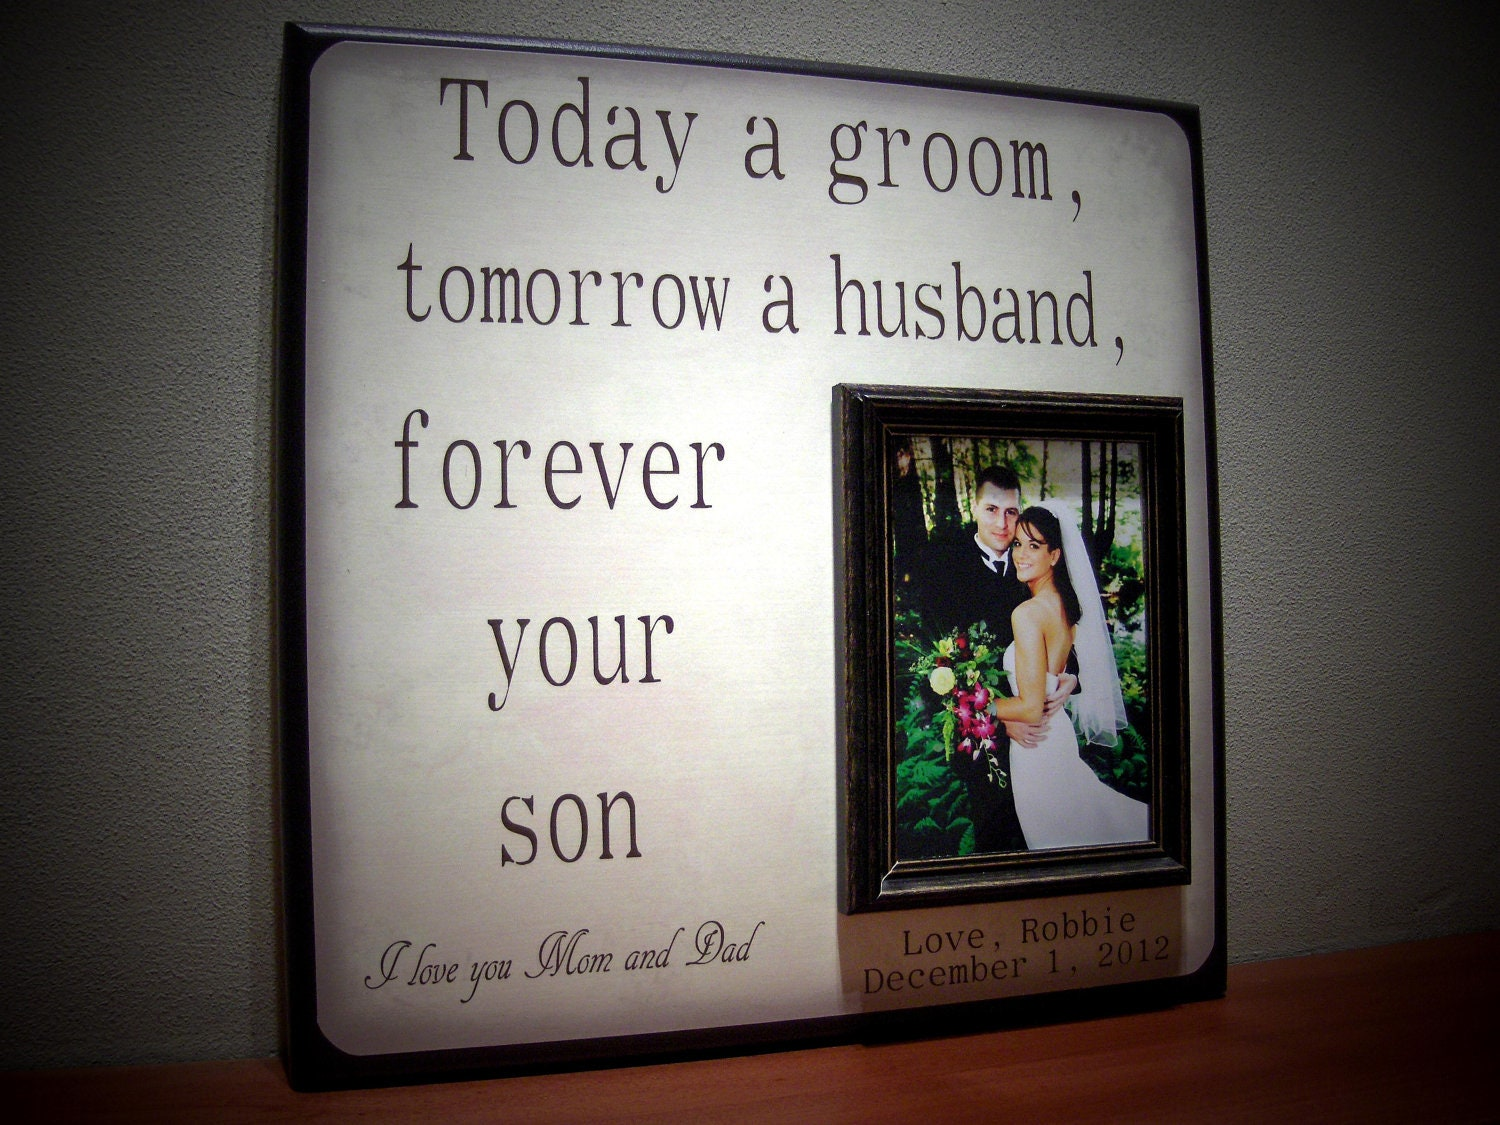 Wedding Present For My Mom : Mother of the Groom Gift Father of the Groom by YourPictureStory